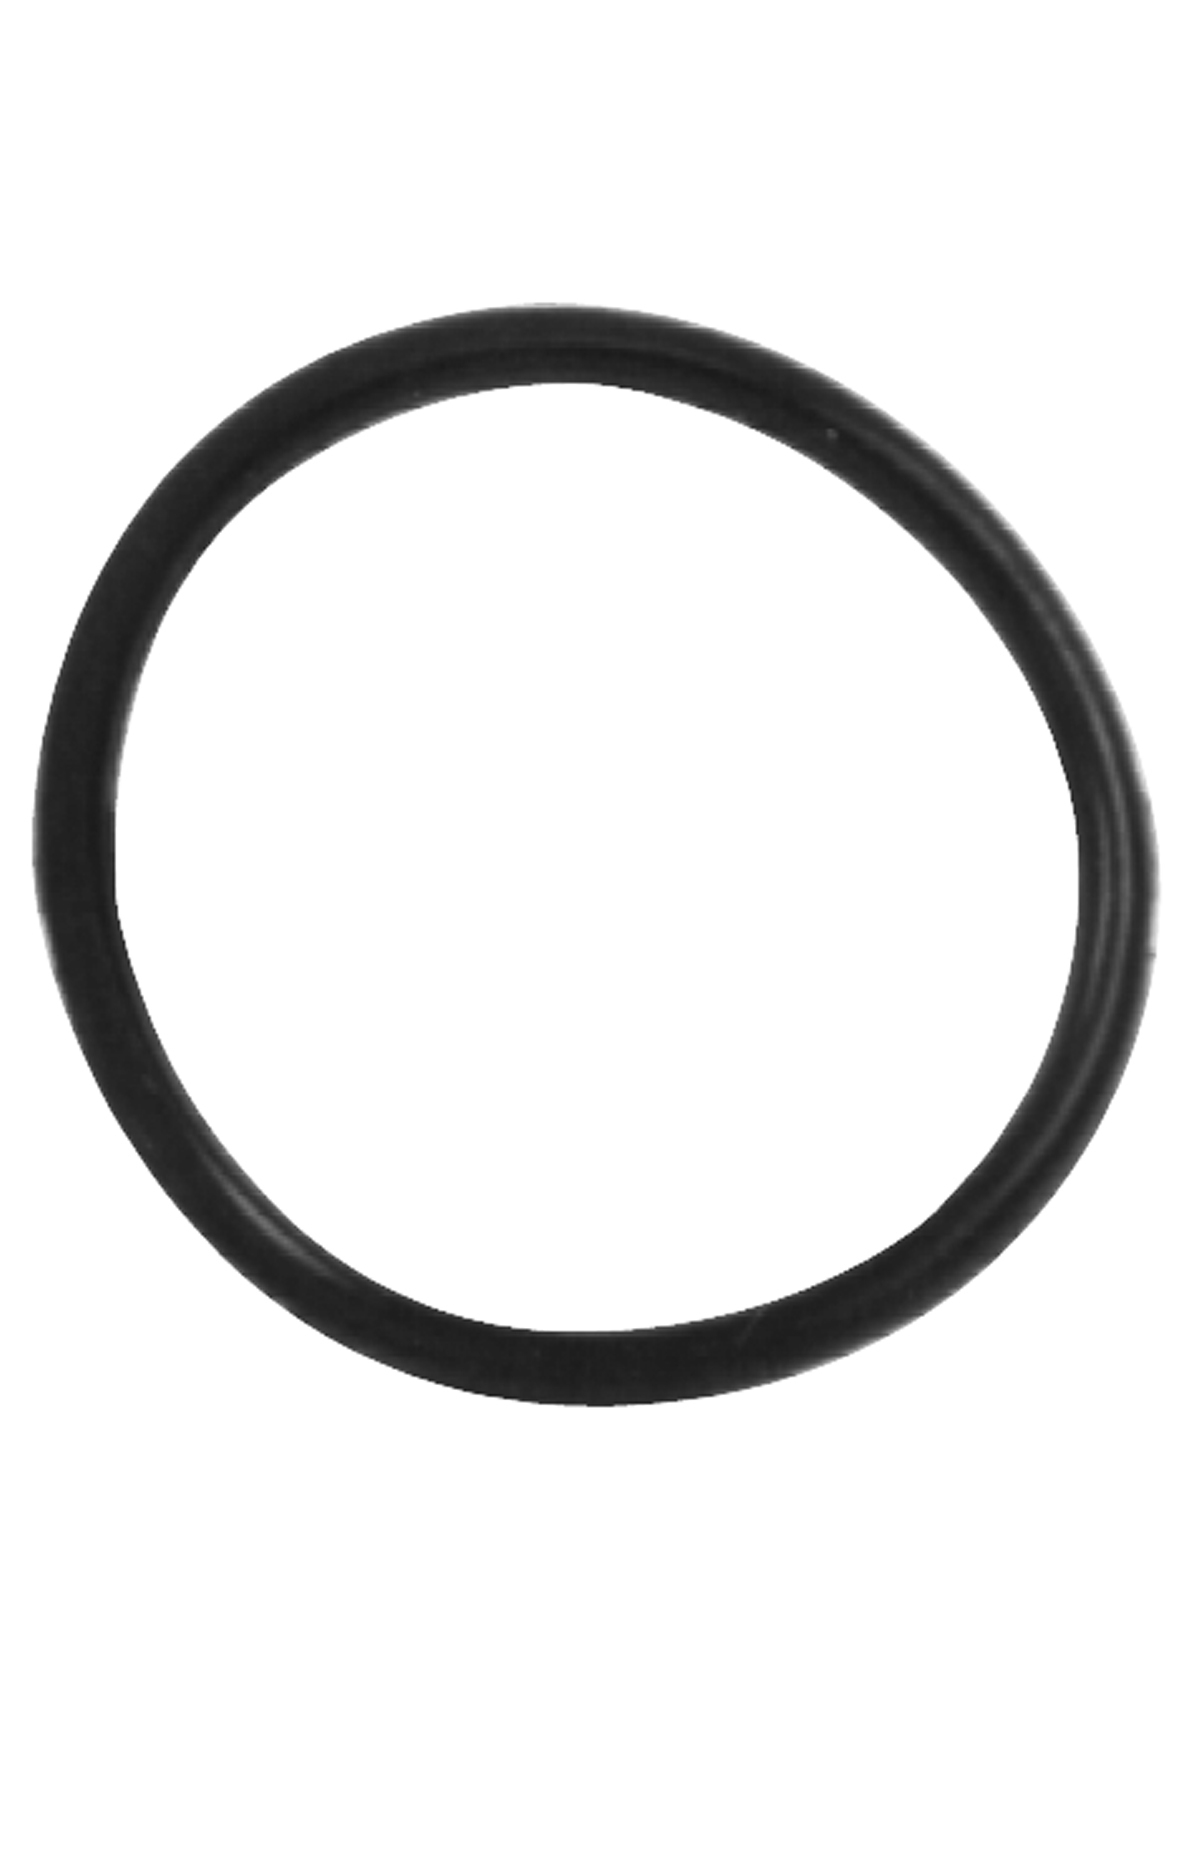 Eureka Upright Replacement Round Belt